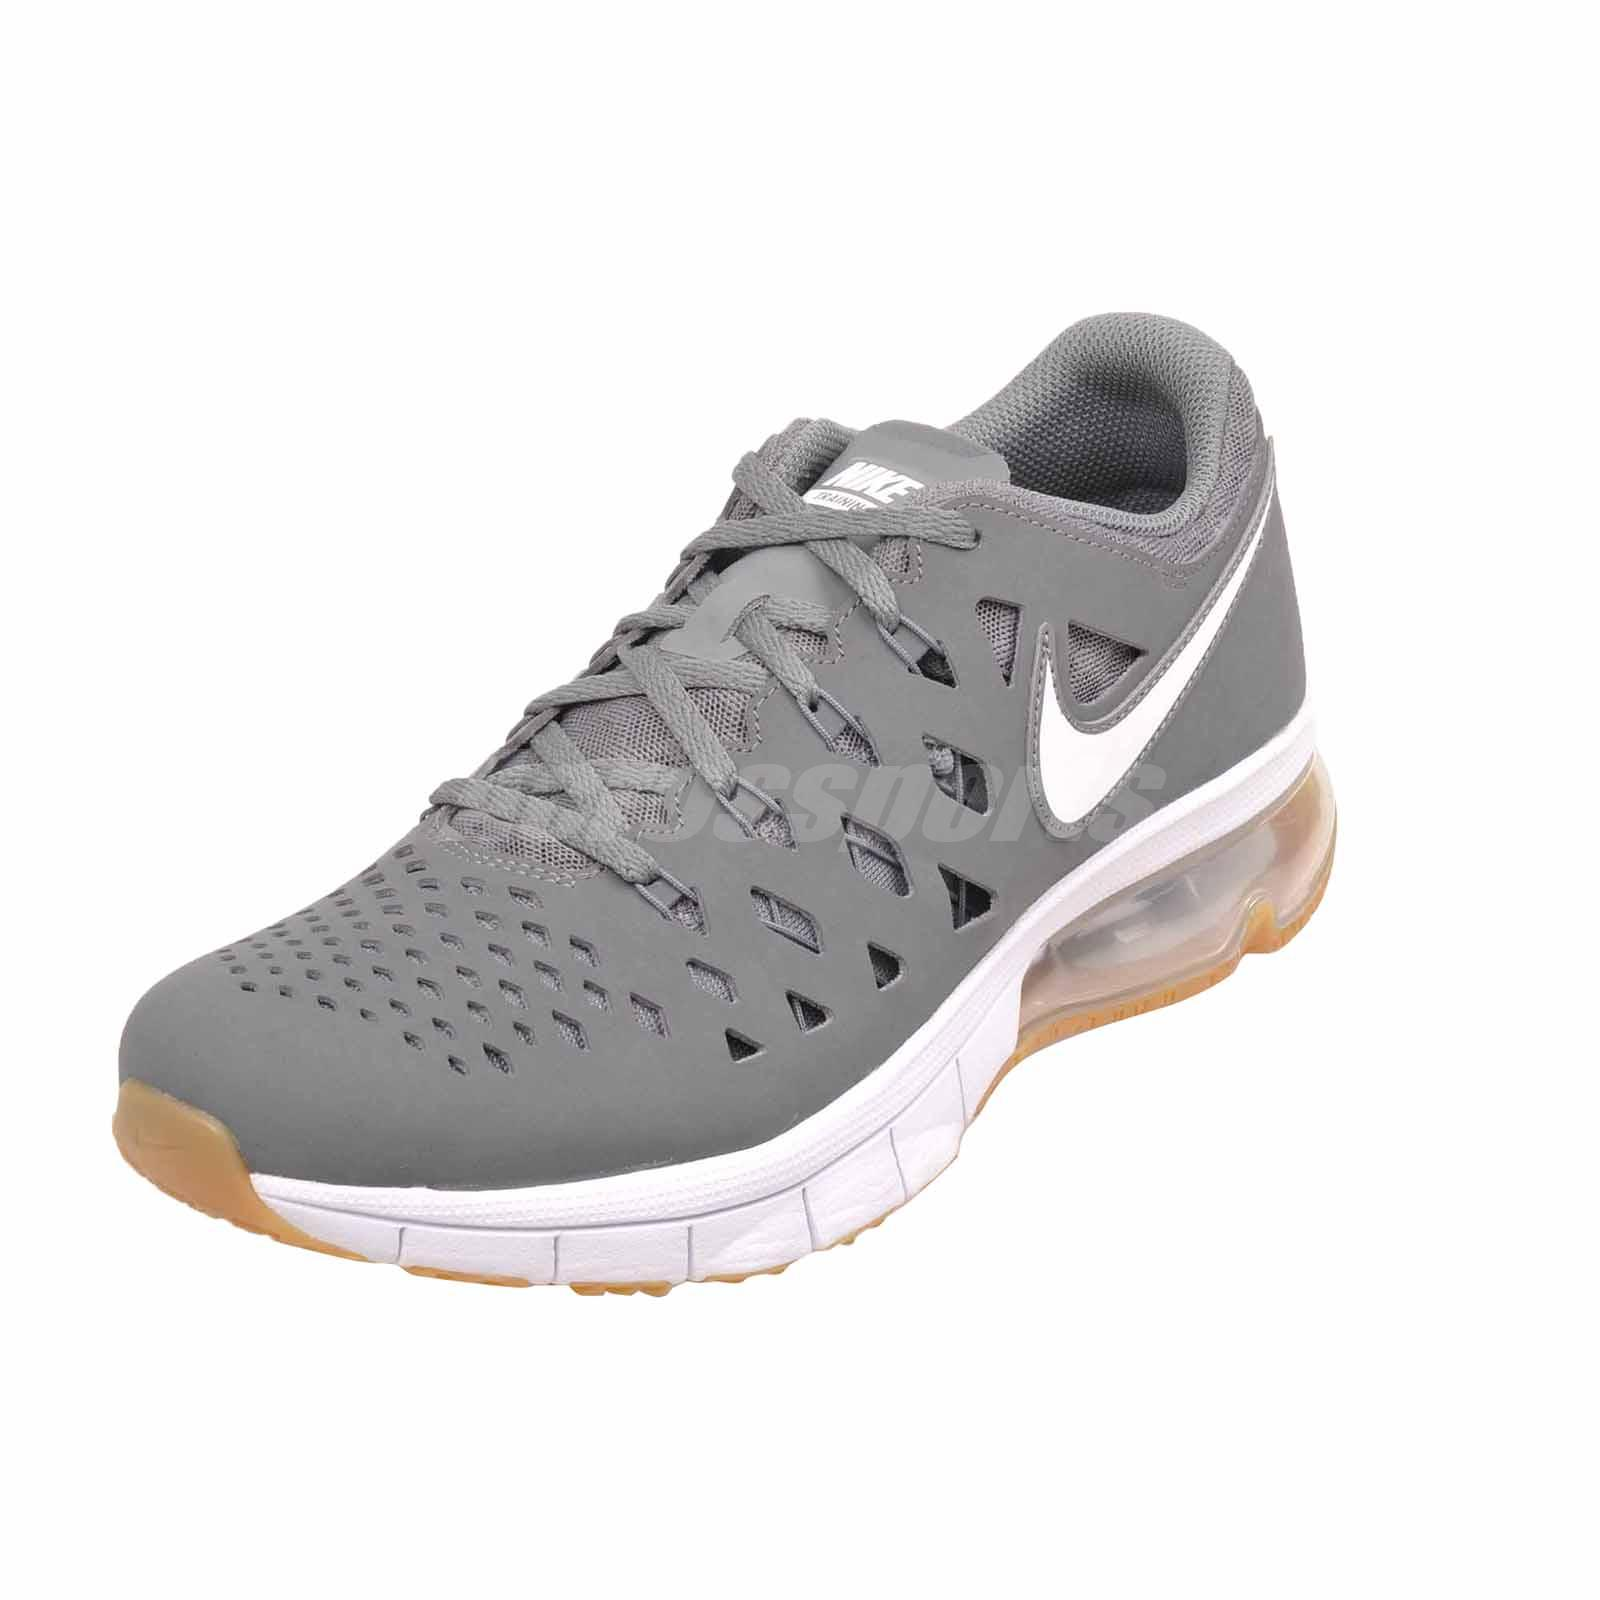 f4565a97d8 Nike Air Trainer 180 Cross Training Mens Shoes Cool Grey 916460-002 ...